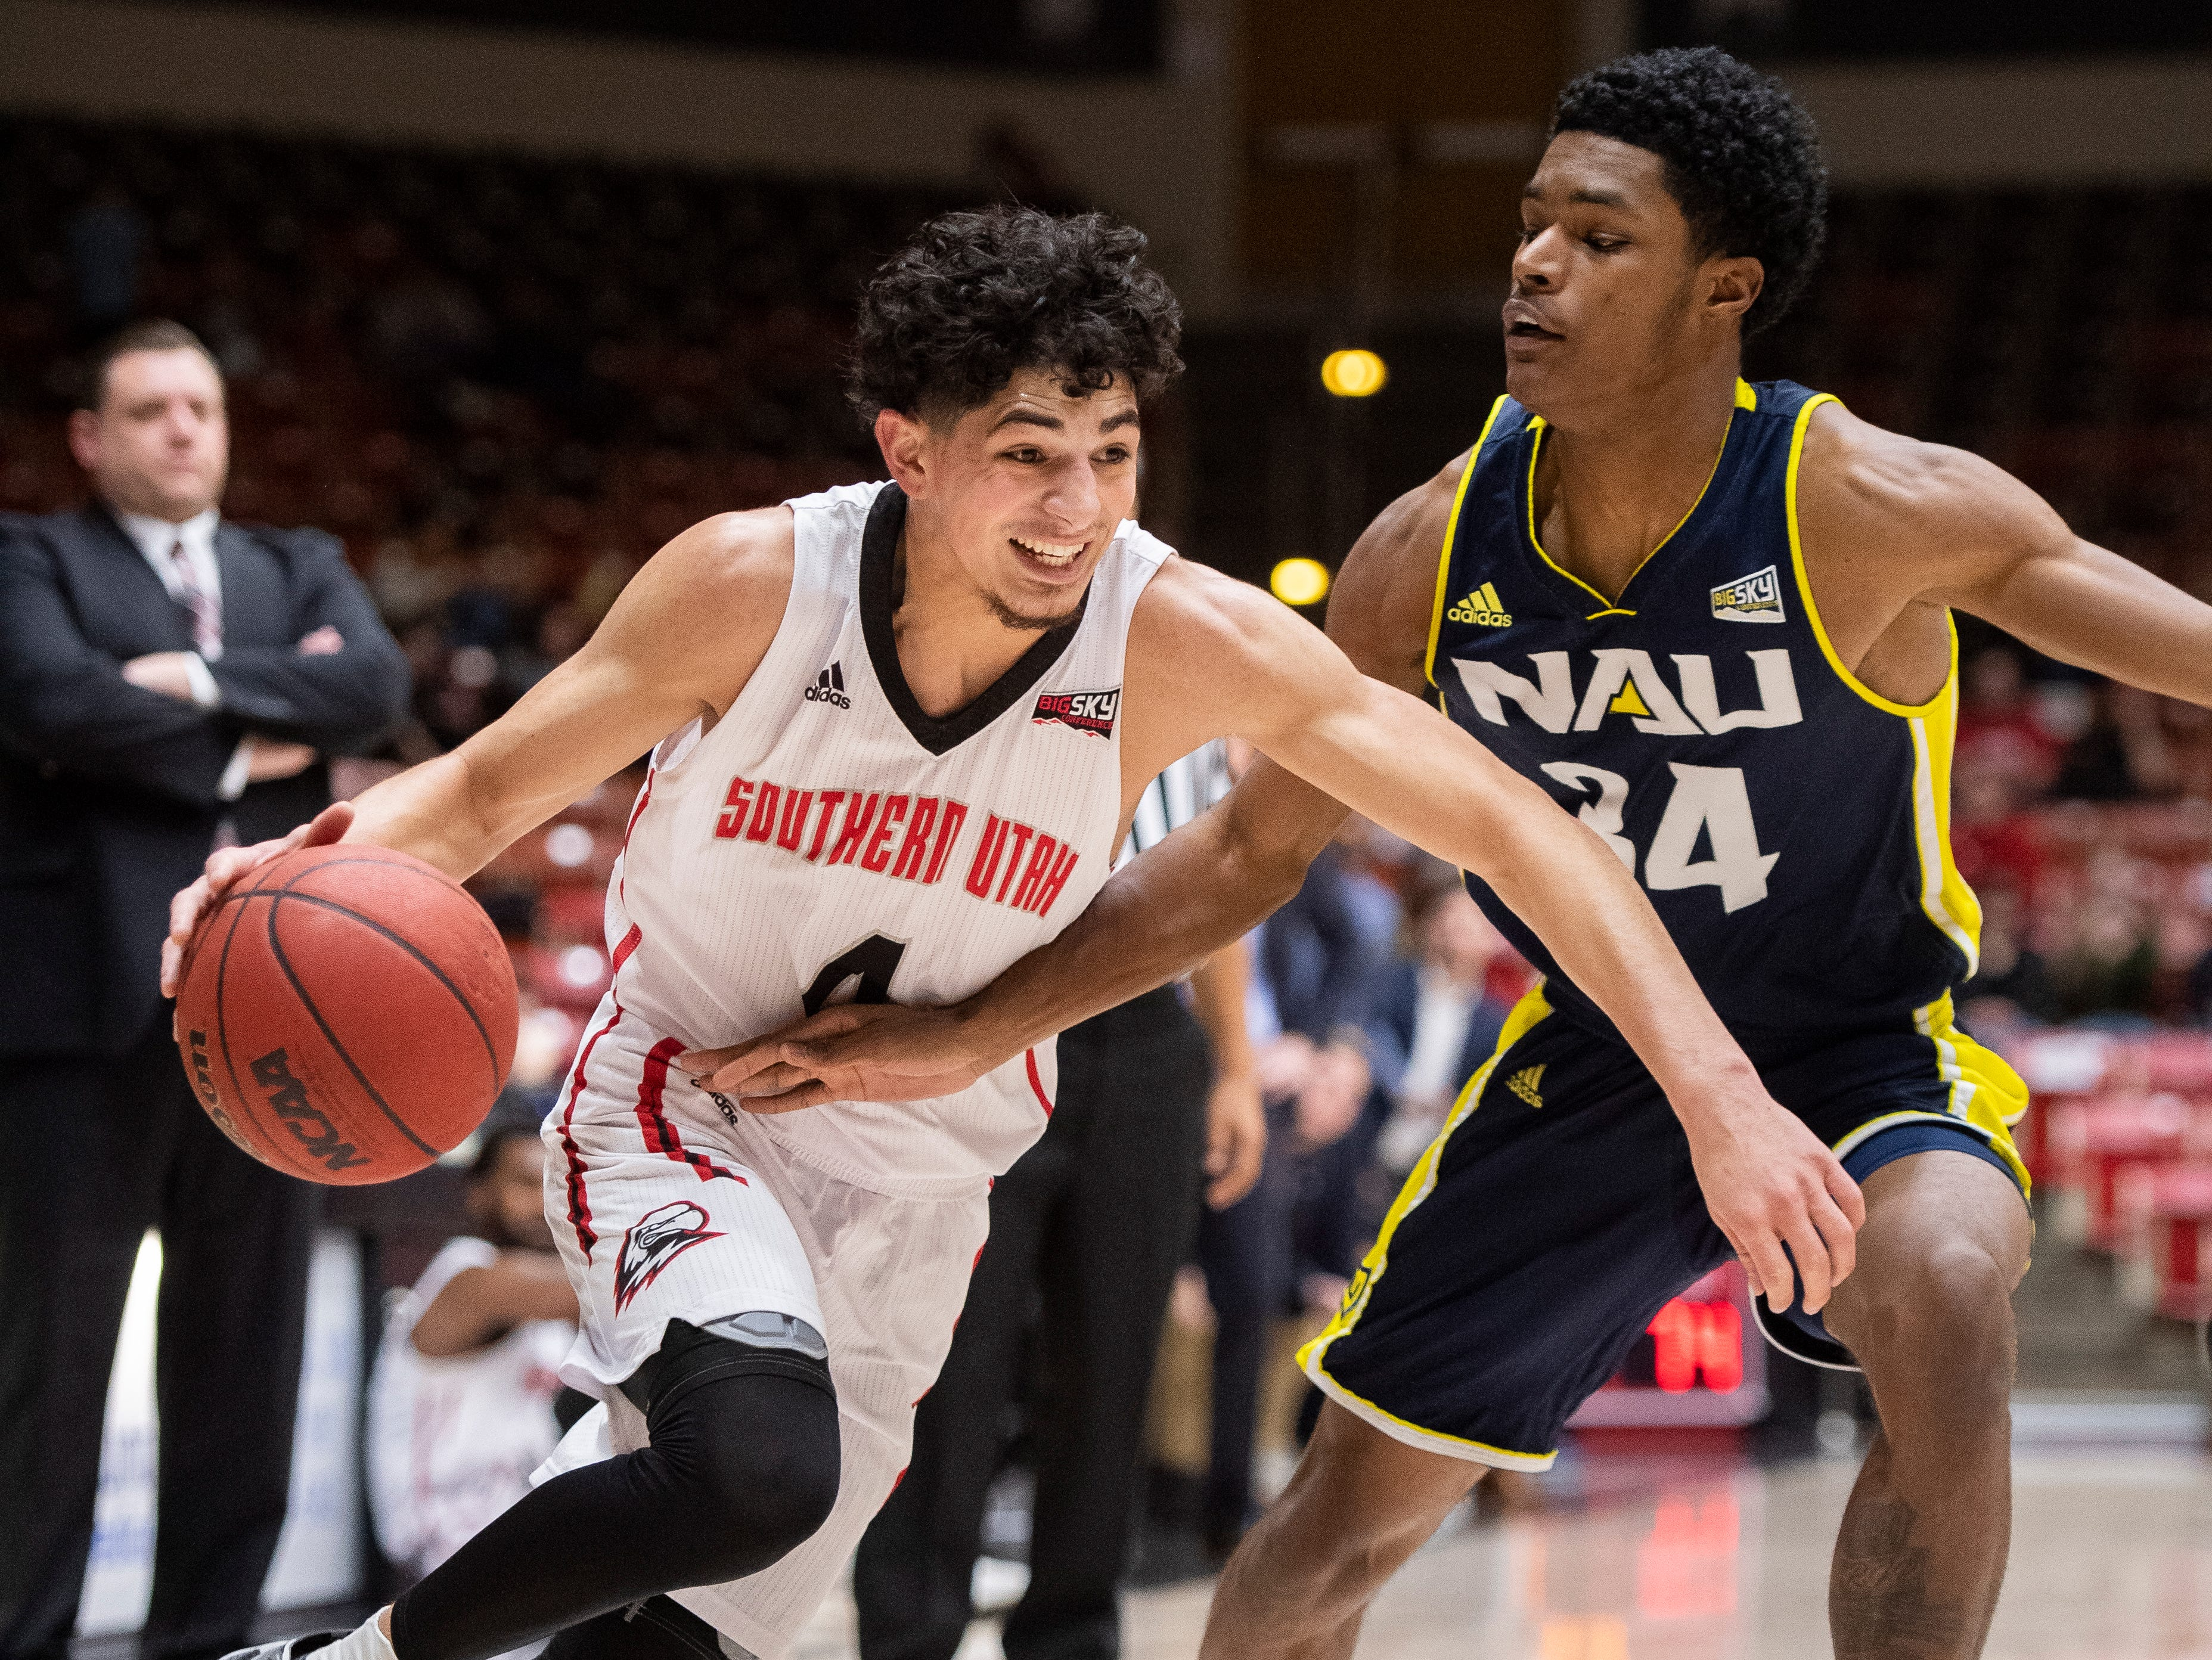 Southern Utah University sophomore Dre Marin (4) pushes towards the basket against rival Northern Arizona at the America First Event Center Saturday, January 12, 2019. SUU won, 84-82.